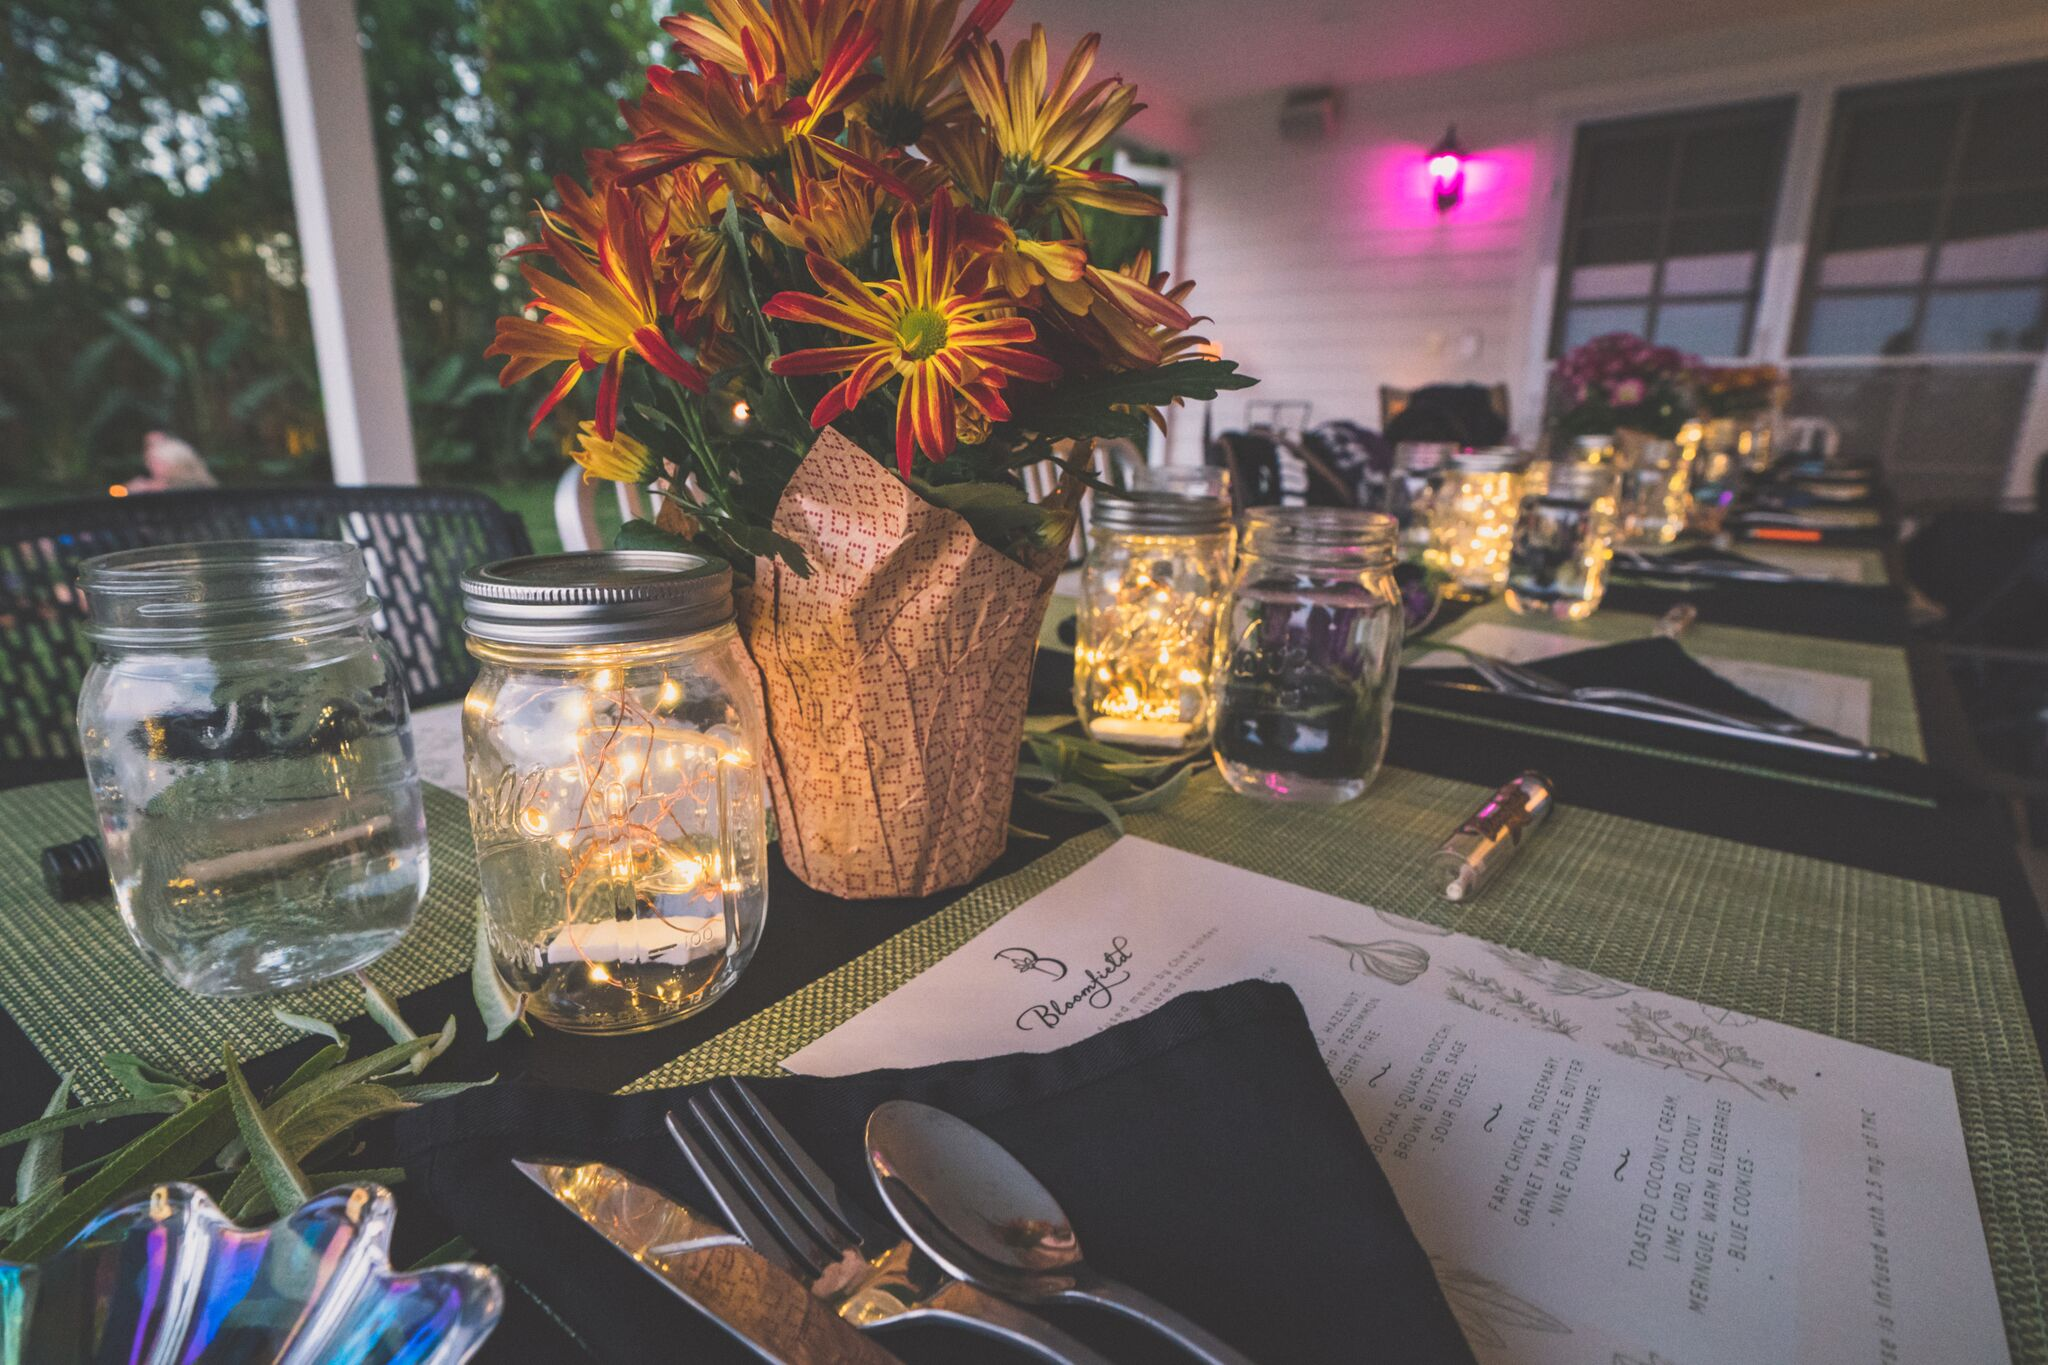 CANNABIS INFUSED DINNER SOIREE